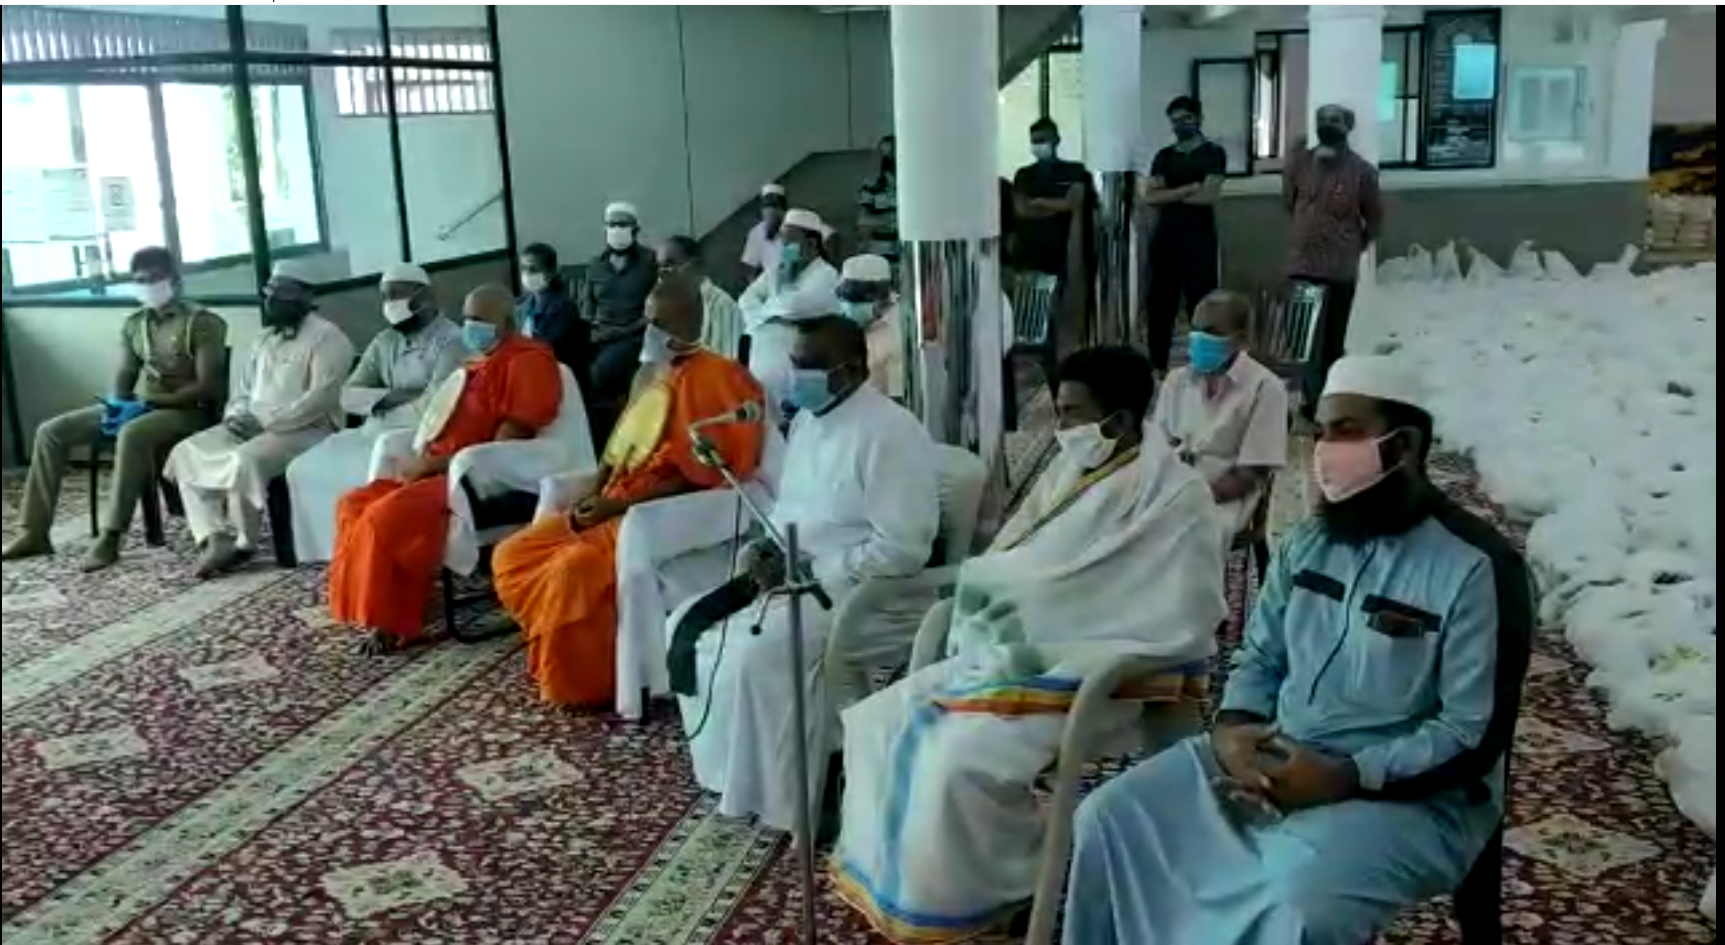 A meeting of Buddist and muslim religious leaders at a mosque in Balapokuna, Sir Lanka, to discuss coronavirus-related issues. (Screengrab)